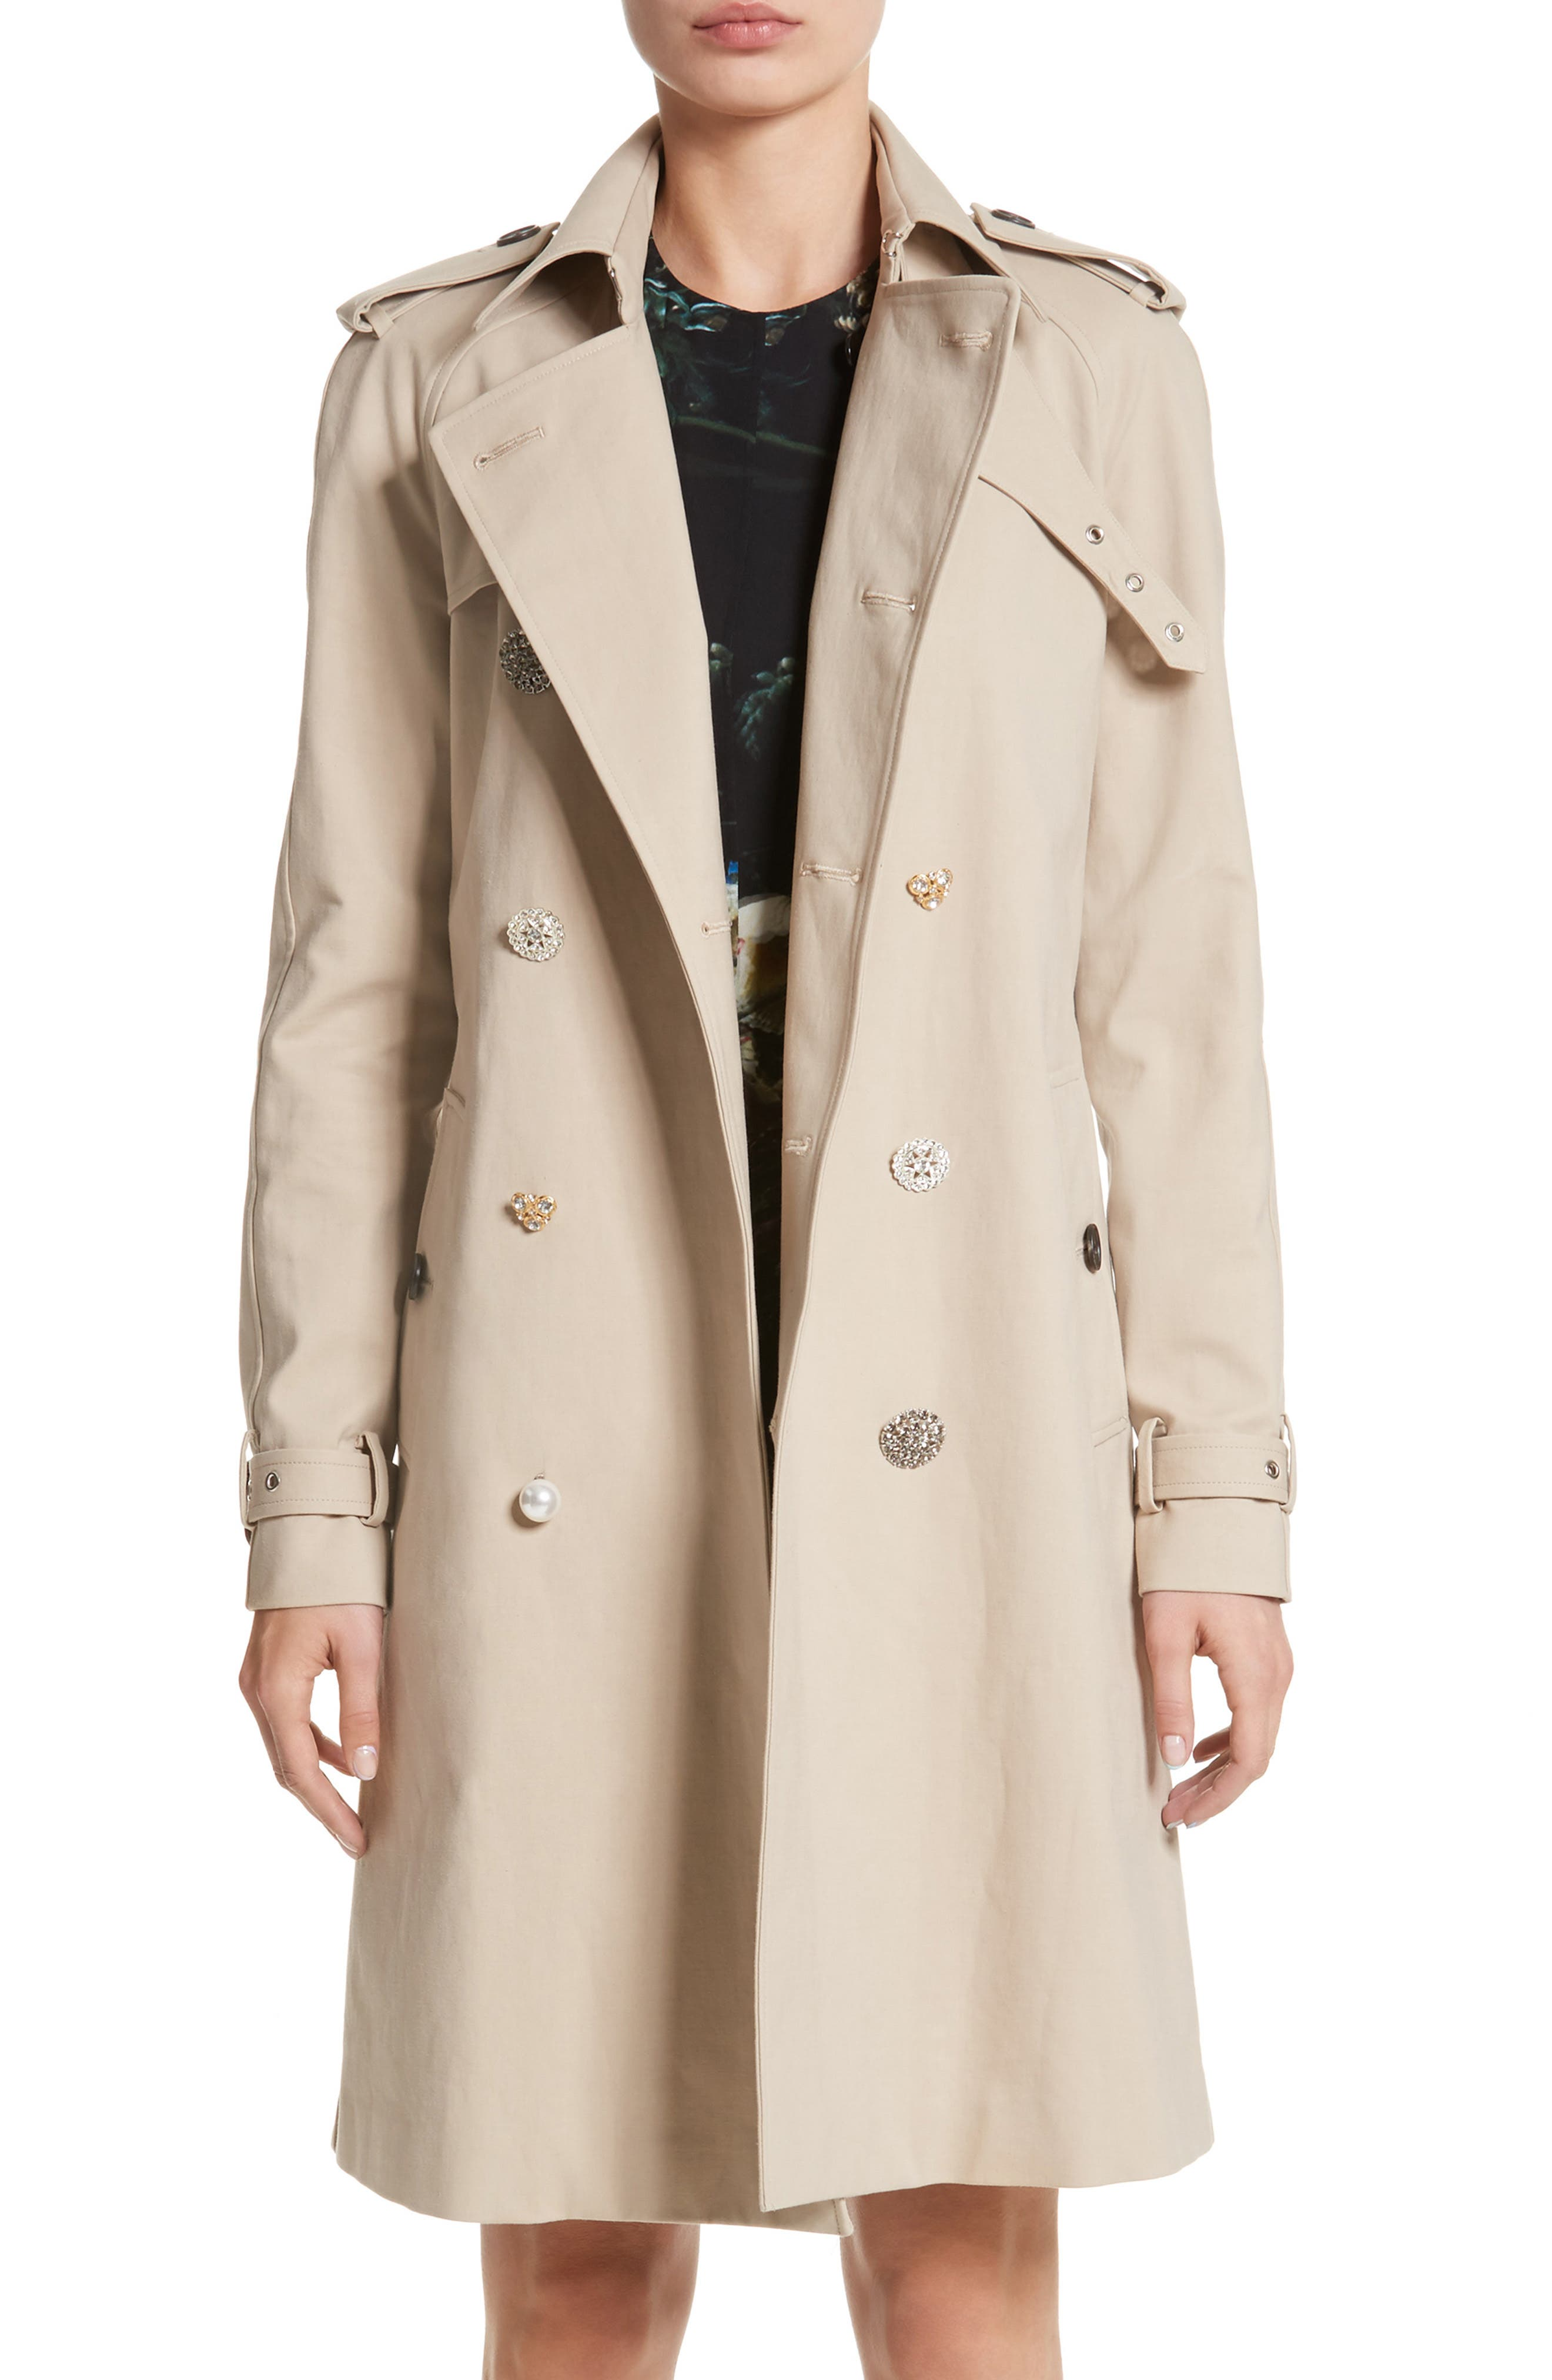 Alternate Image 1 Selected - Adam Lippes Embellished Button Trench Coat